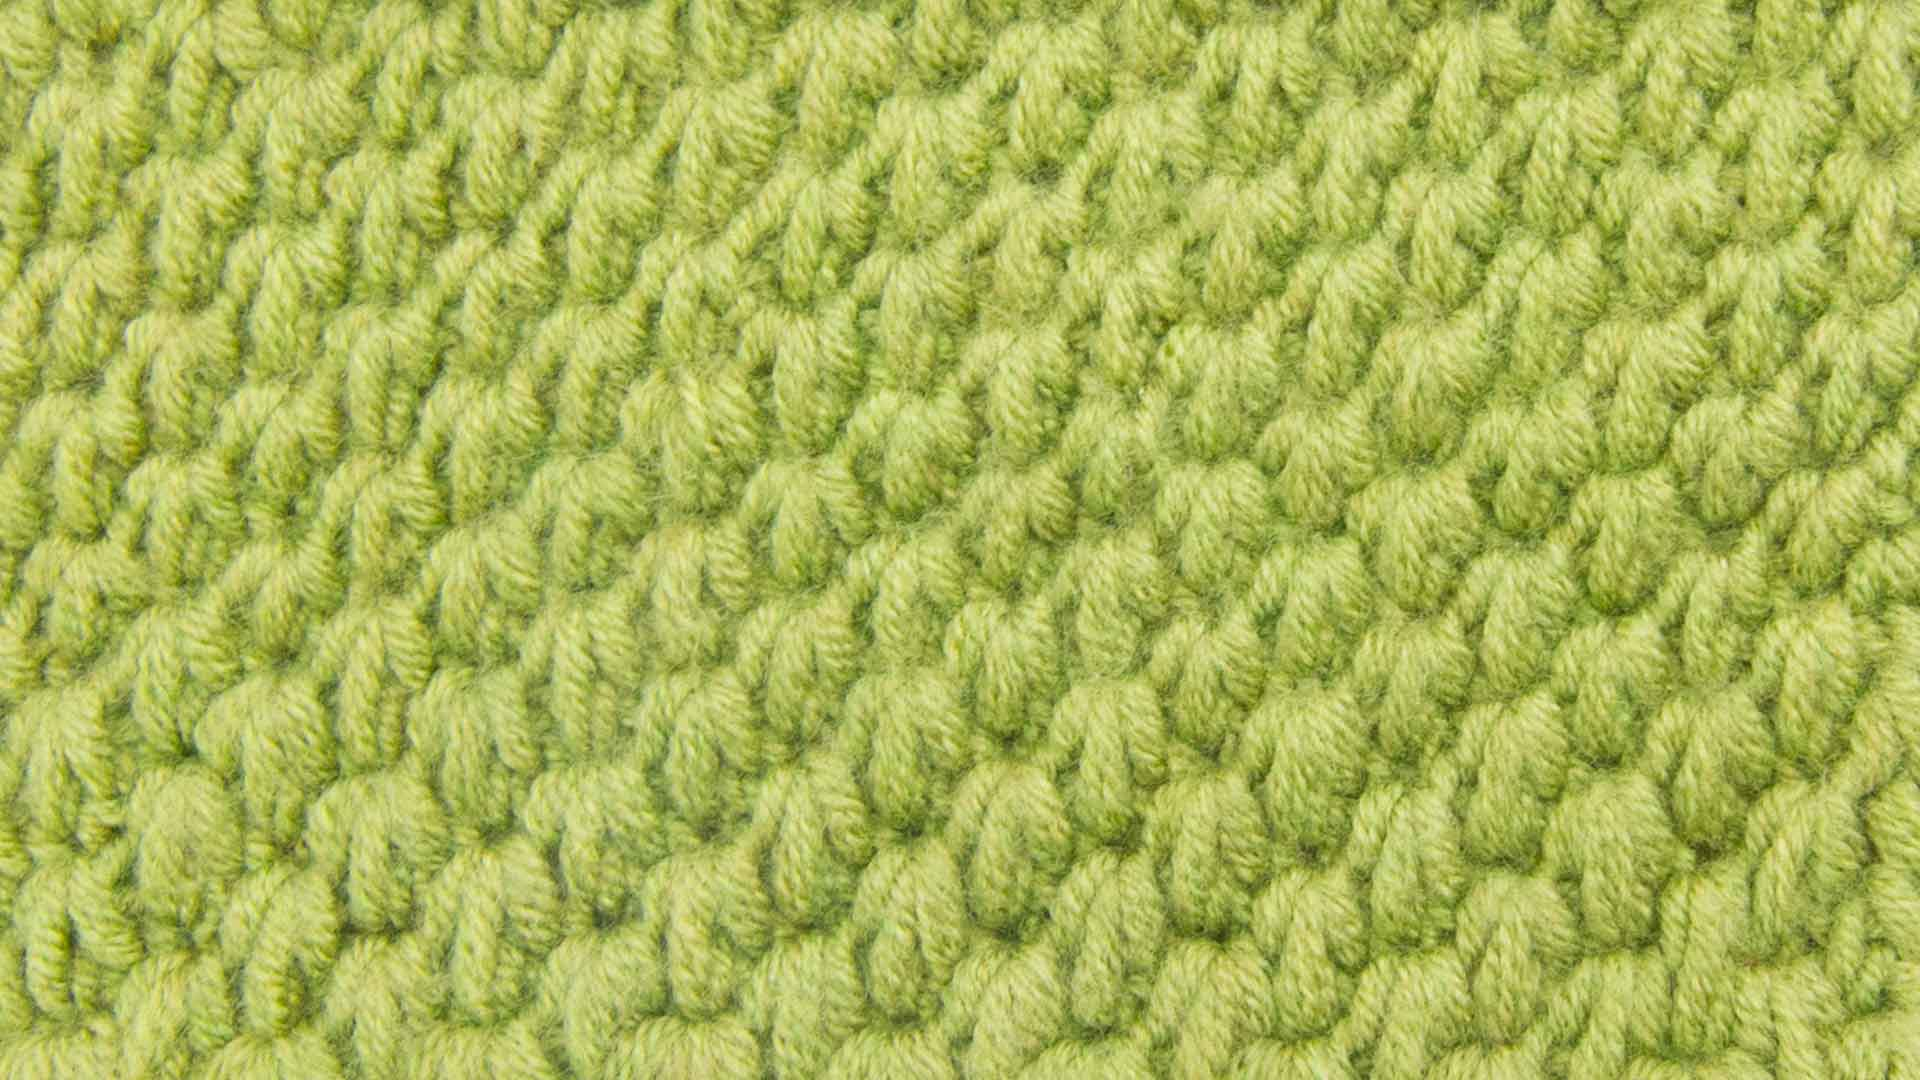 Crochet Stitches Rs : The Tunisian Ocean Stitch :: Tunisian Crochet Stitch #12